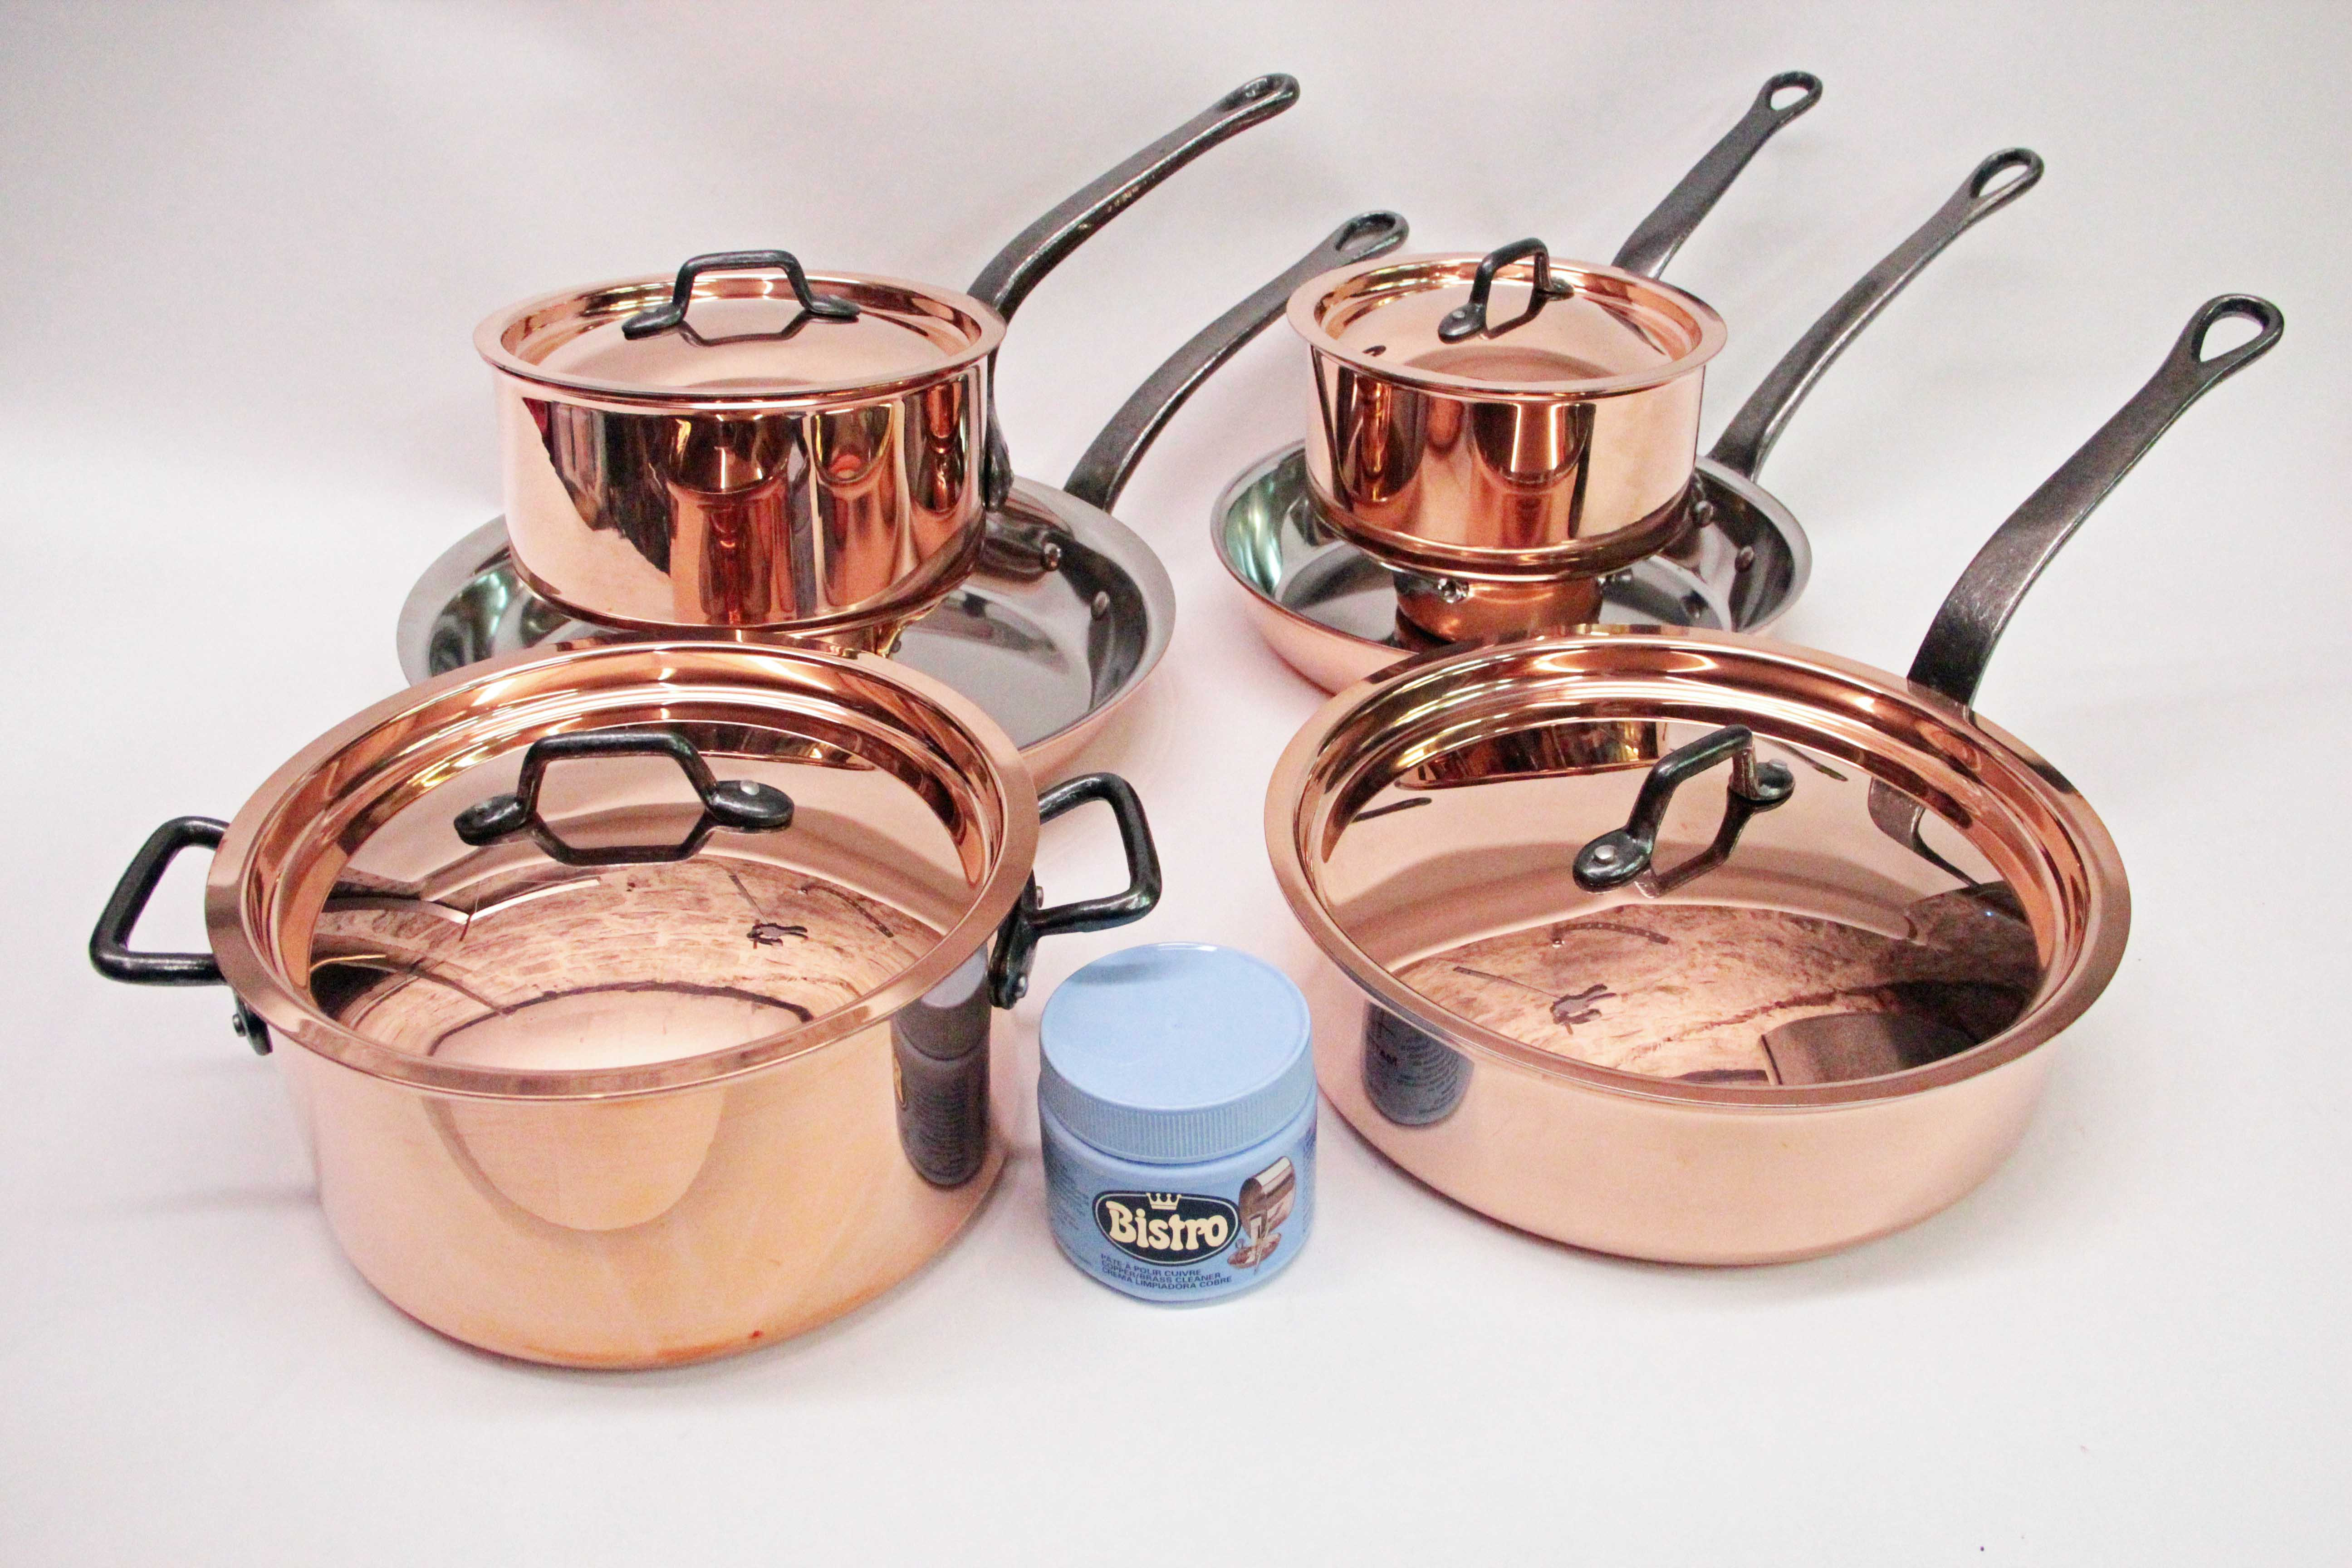 Matfer-Bourgeat 10pc. Copper Set